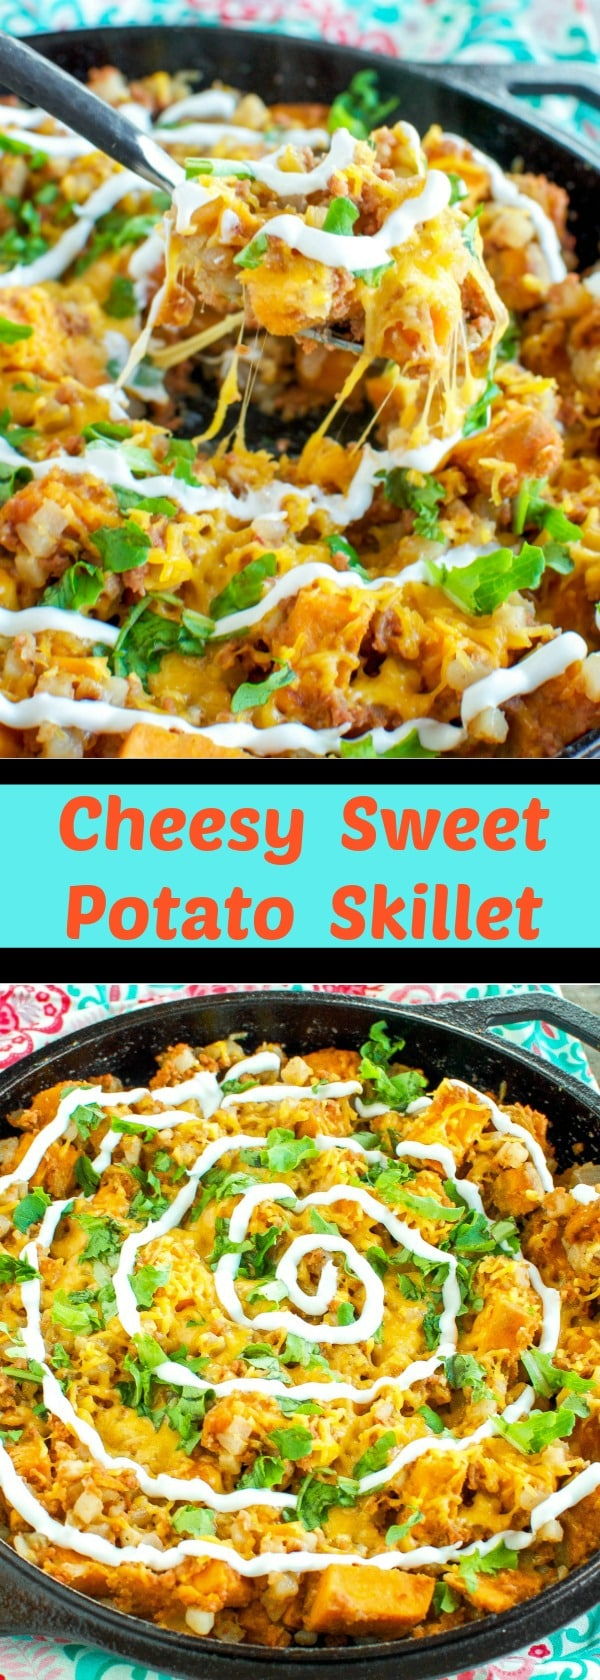 Cheesy Sweet Potato Skillet - Easy 20 minute dinner! #Promotion